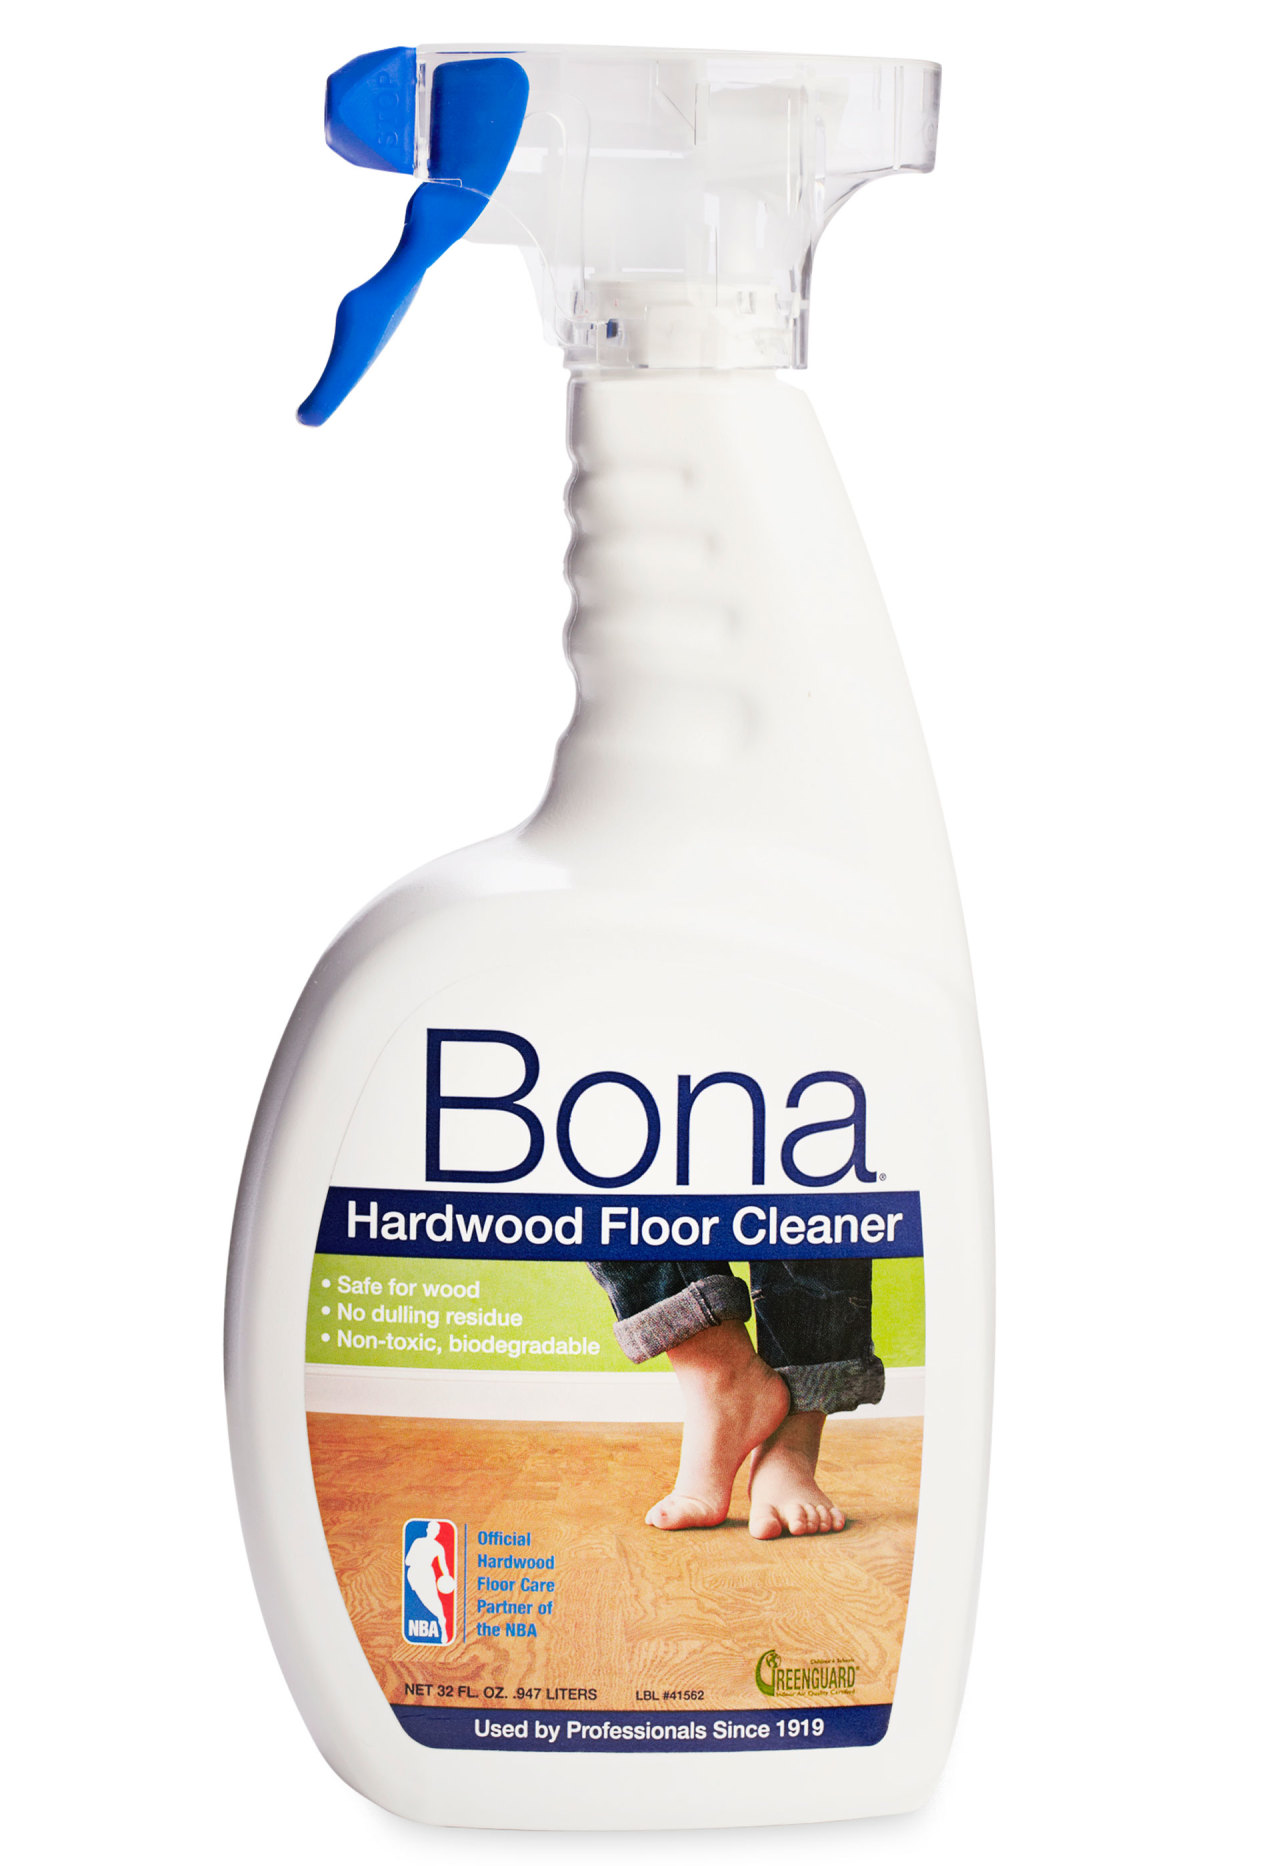 best product to clean hardwood floors bona hardwood floor cleaner non toxic and biodegradable - Best Bathroom Cleaning Products